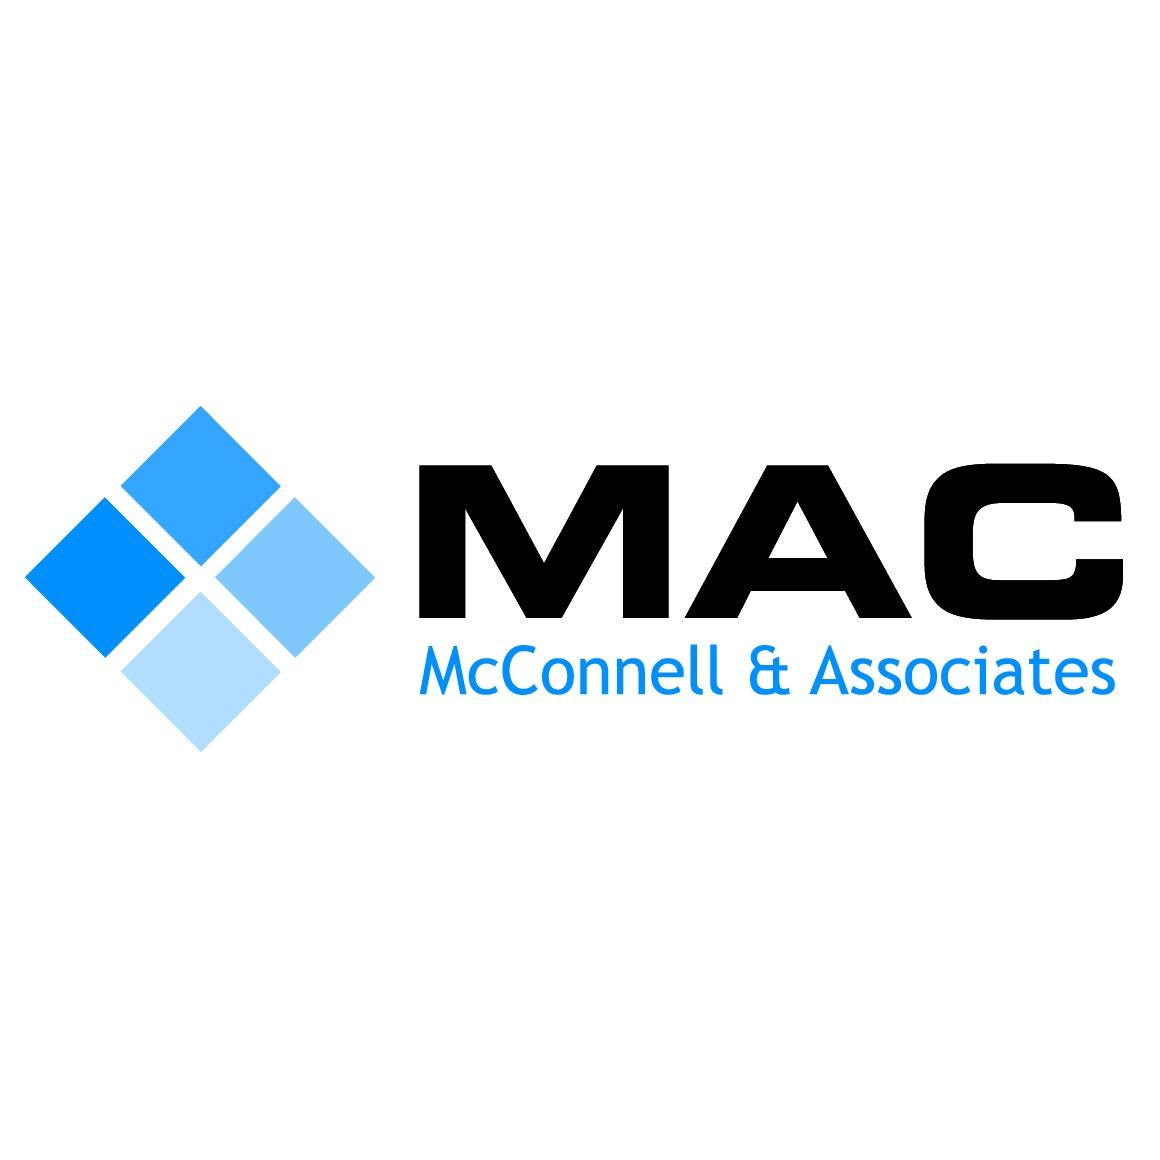 McConnell and Associates | St. Louis - Rock Hill, MO - General Contractors